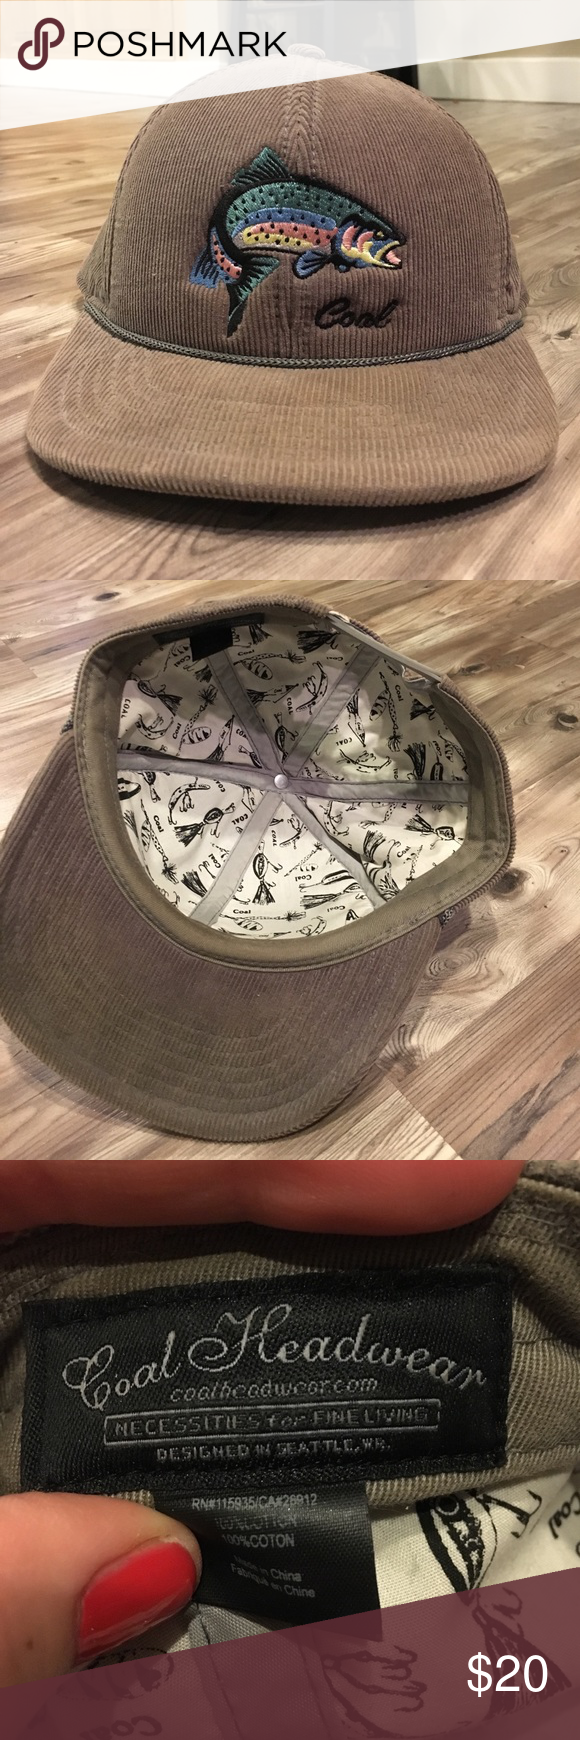 Coal brand SnapBack men s hat. Coal brand. Gray corduroy men s hat with a  fish sewn on. Great condition- only worn a few times. Coal Accessories Hats fdeca51d423